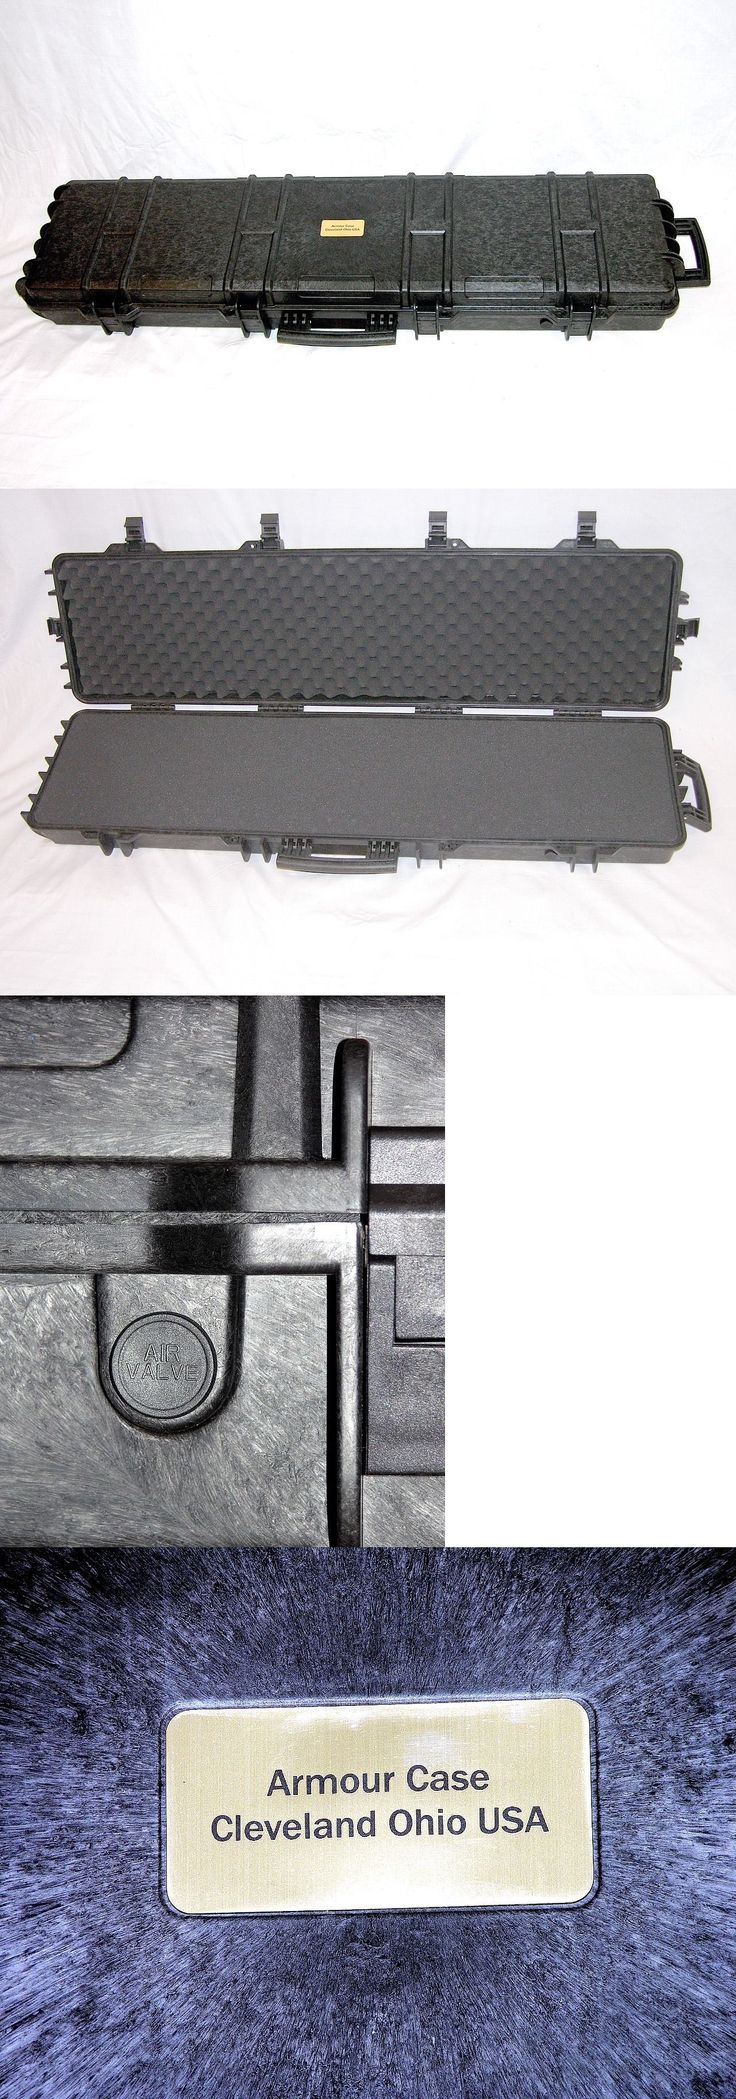 Cases 73938: Black Armourcase Includes Pelican 1750 Case Pick N Pluck Foam + Nameplate -> BUY IT NOW ONLY: $174.88 on eBay!